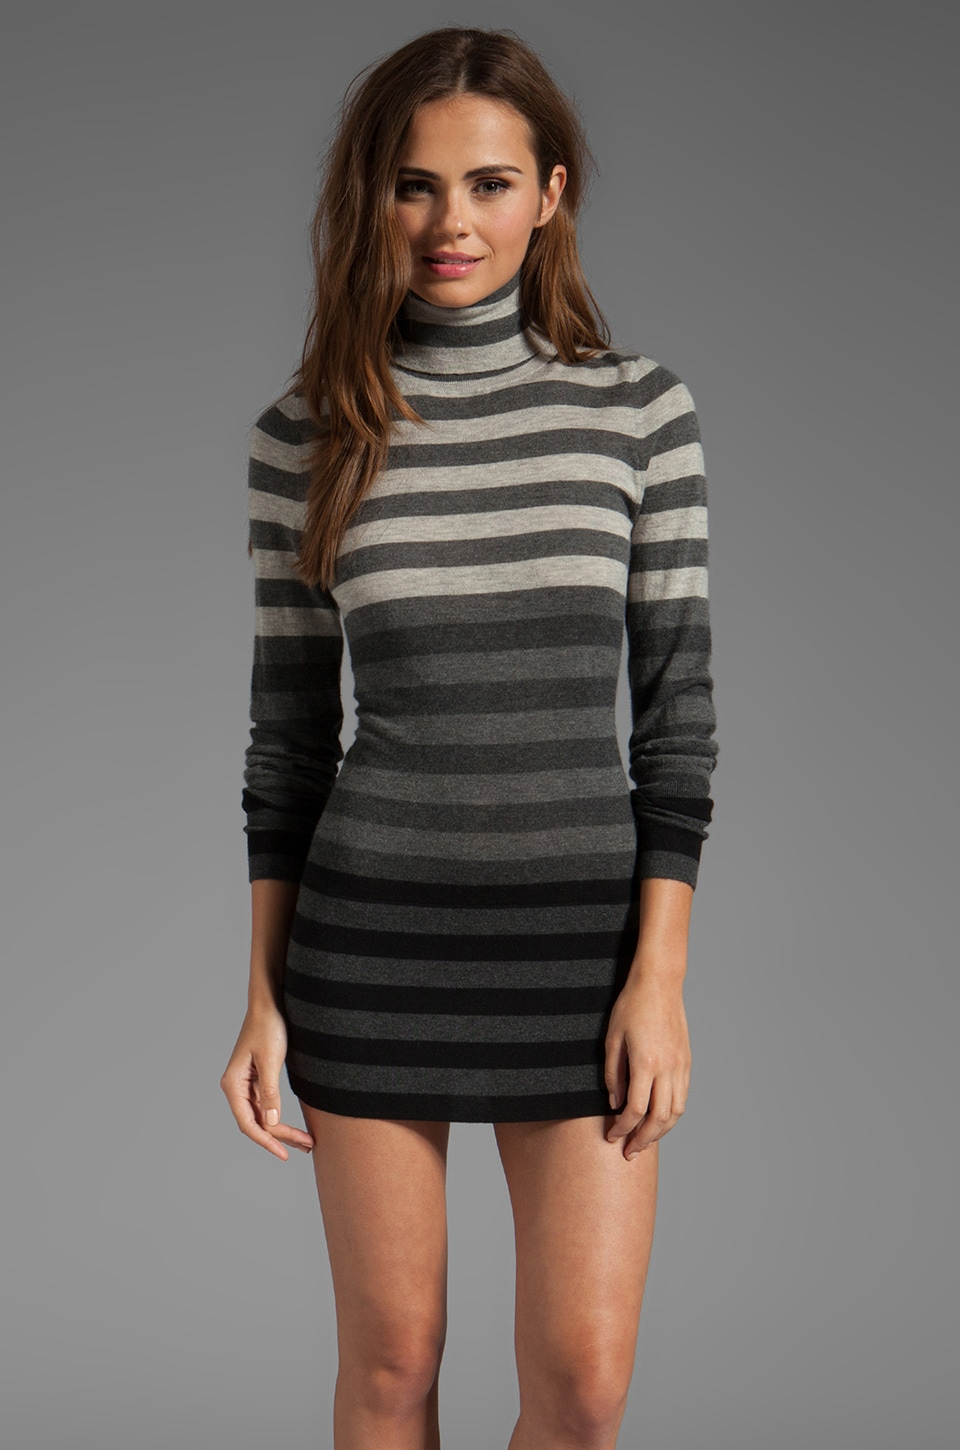 Autumn Cashmere Striped Fitted Tissue Cashmere Turtleneck Tunic Sweater Dresses in Black/Grey Combo